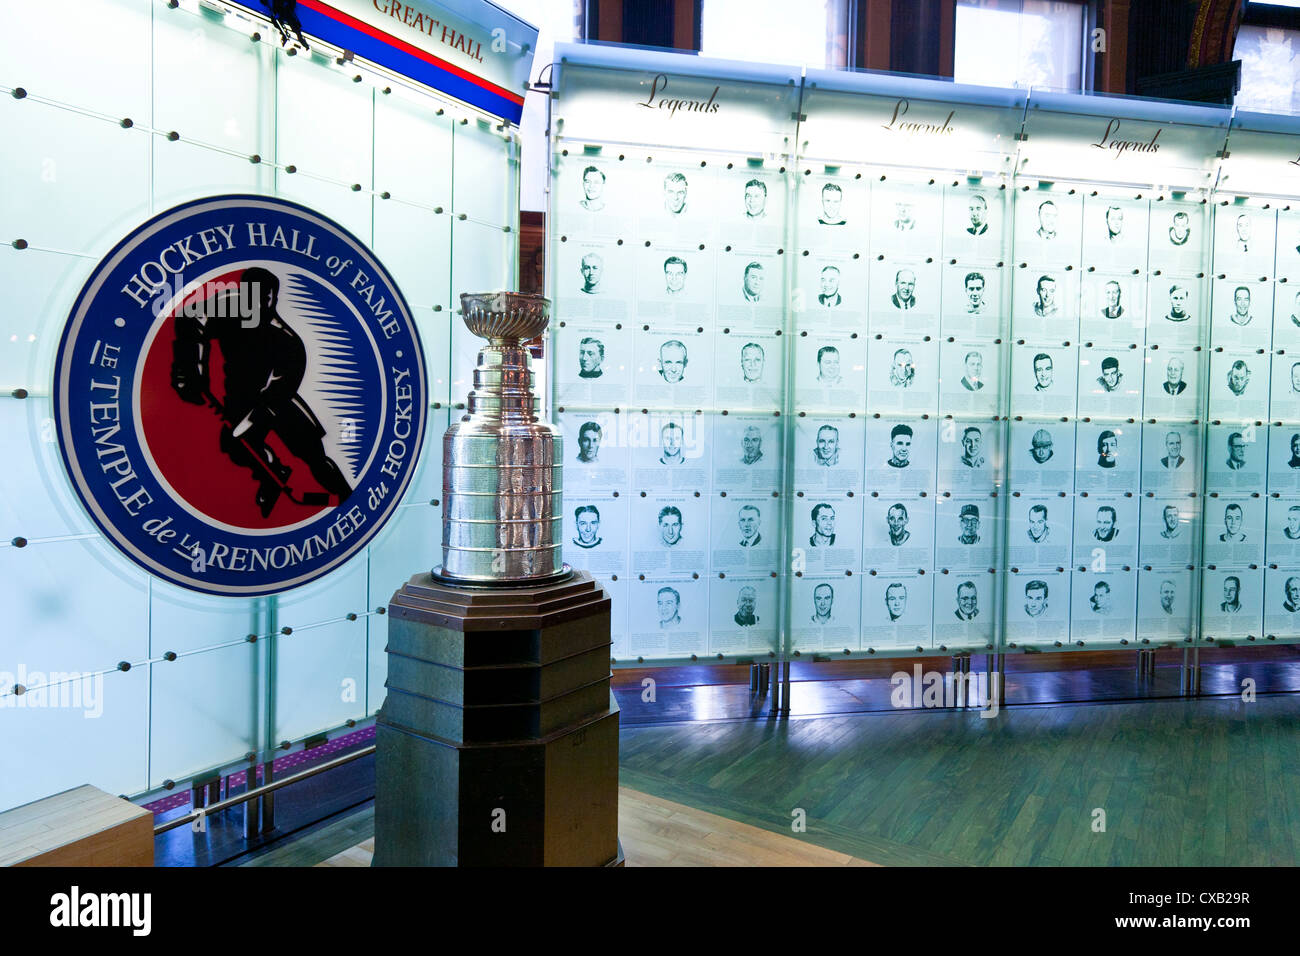 Hockey Hall of Fame, Toronto, Ontario, Canada, North America - Stock Image